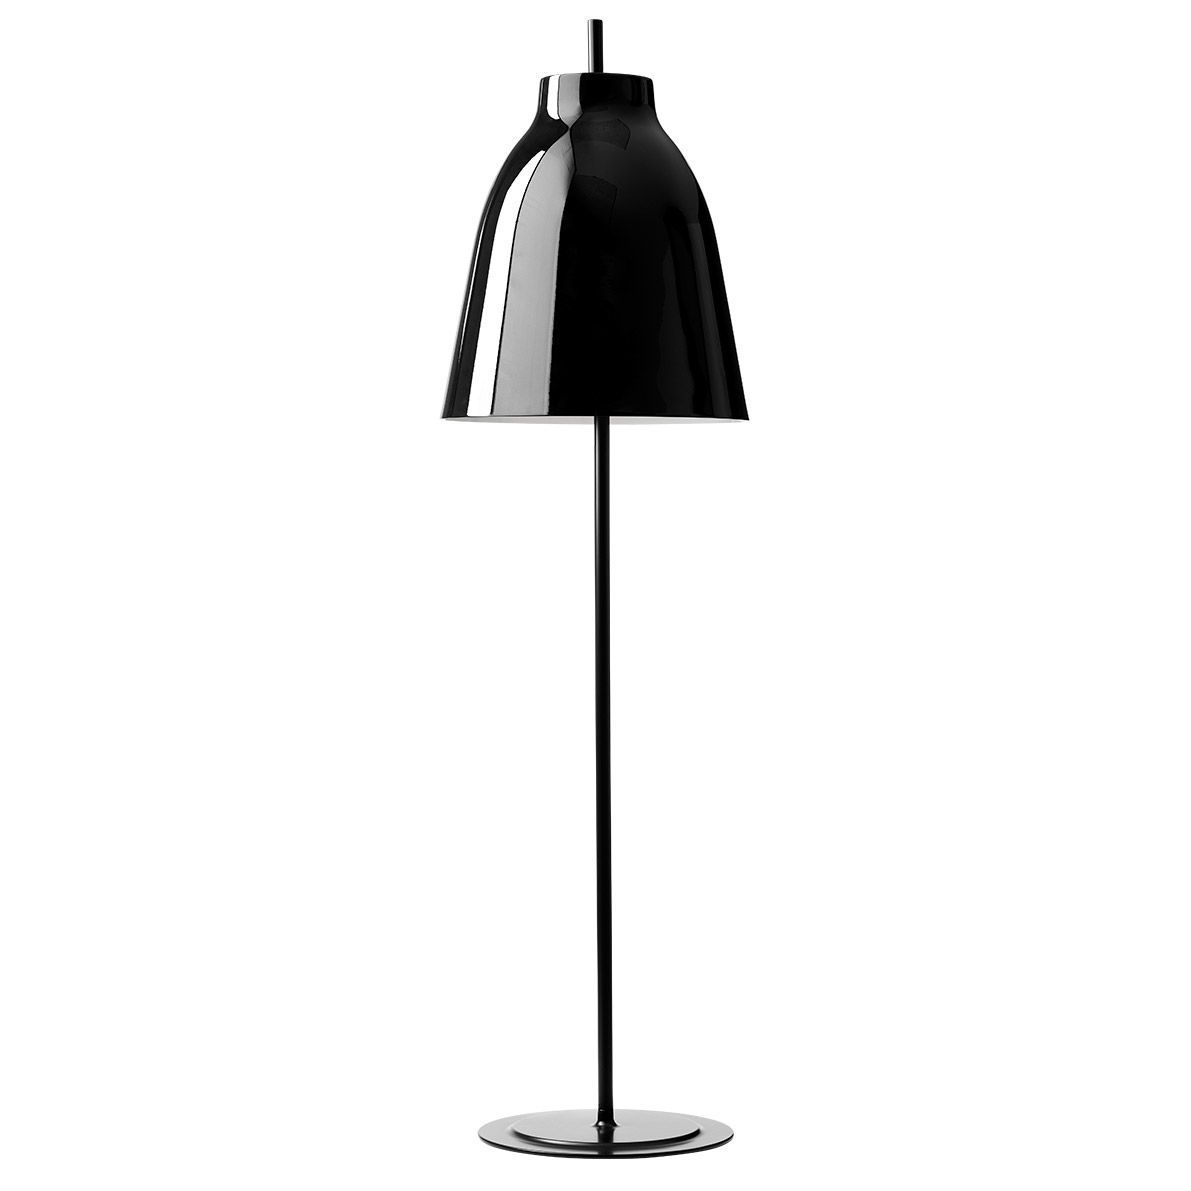 Caravaggio black lamp by Cecilie Manz edited by LightYears